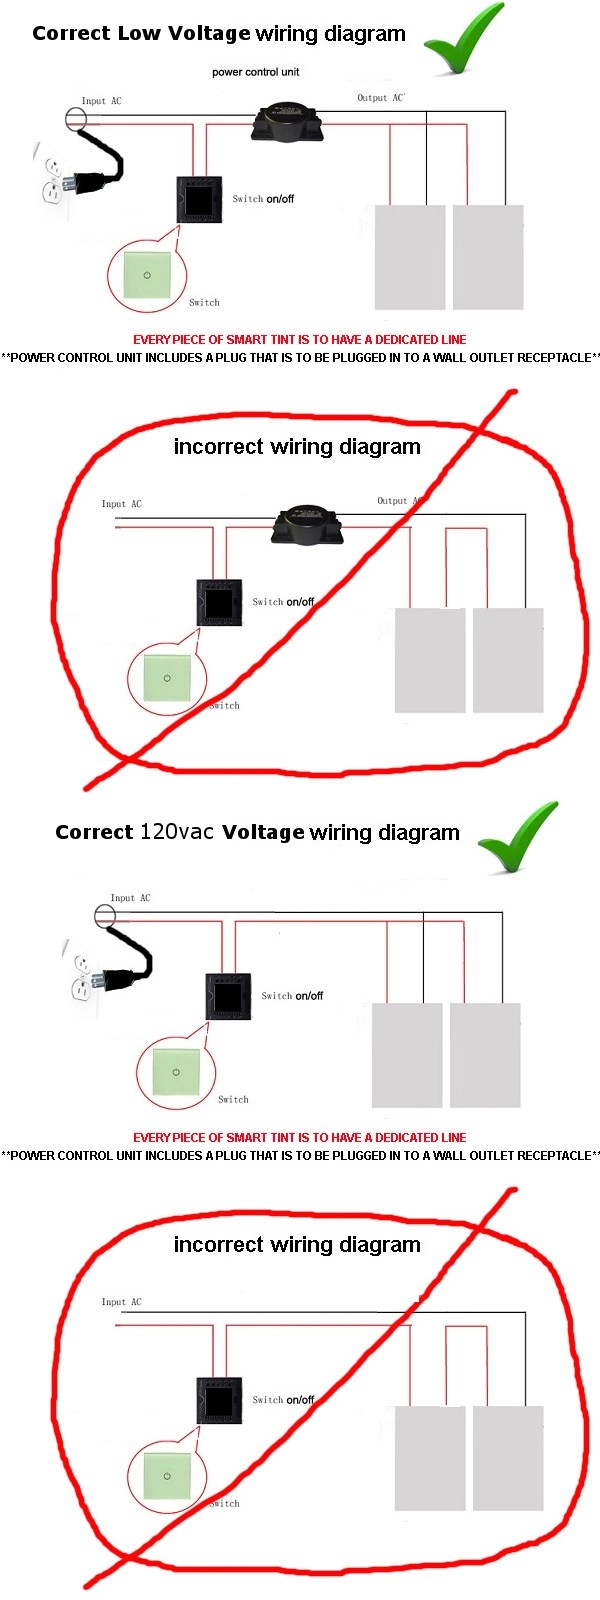 medium resolution of wiring should be in a parallel circuit and not daisy chained in series this diagram applies to all of our material both our low voltage and 120 vac line